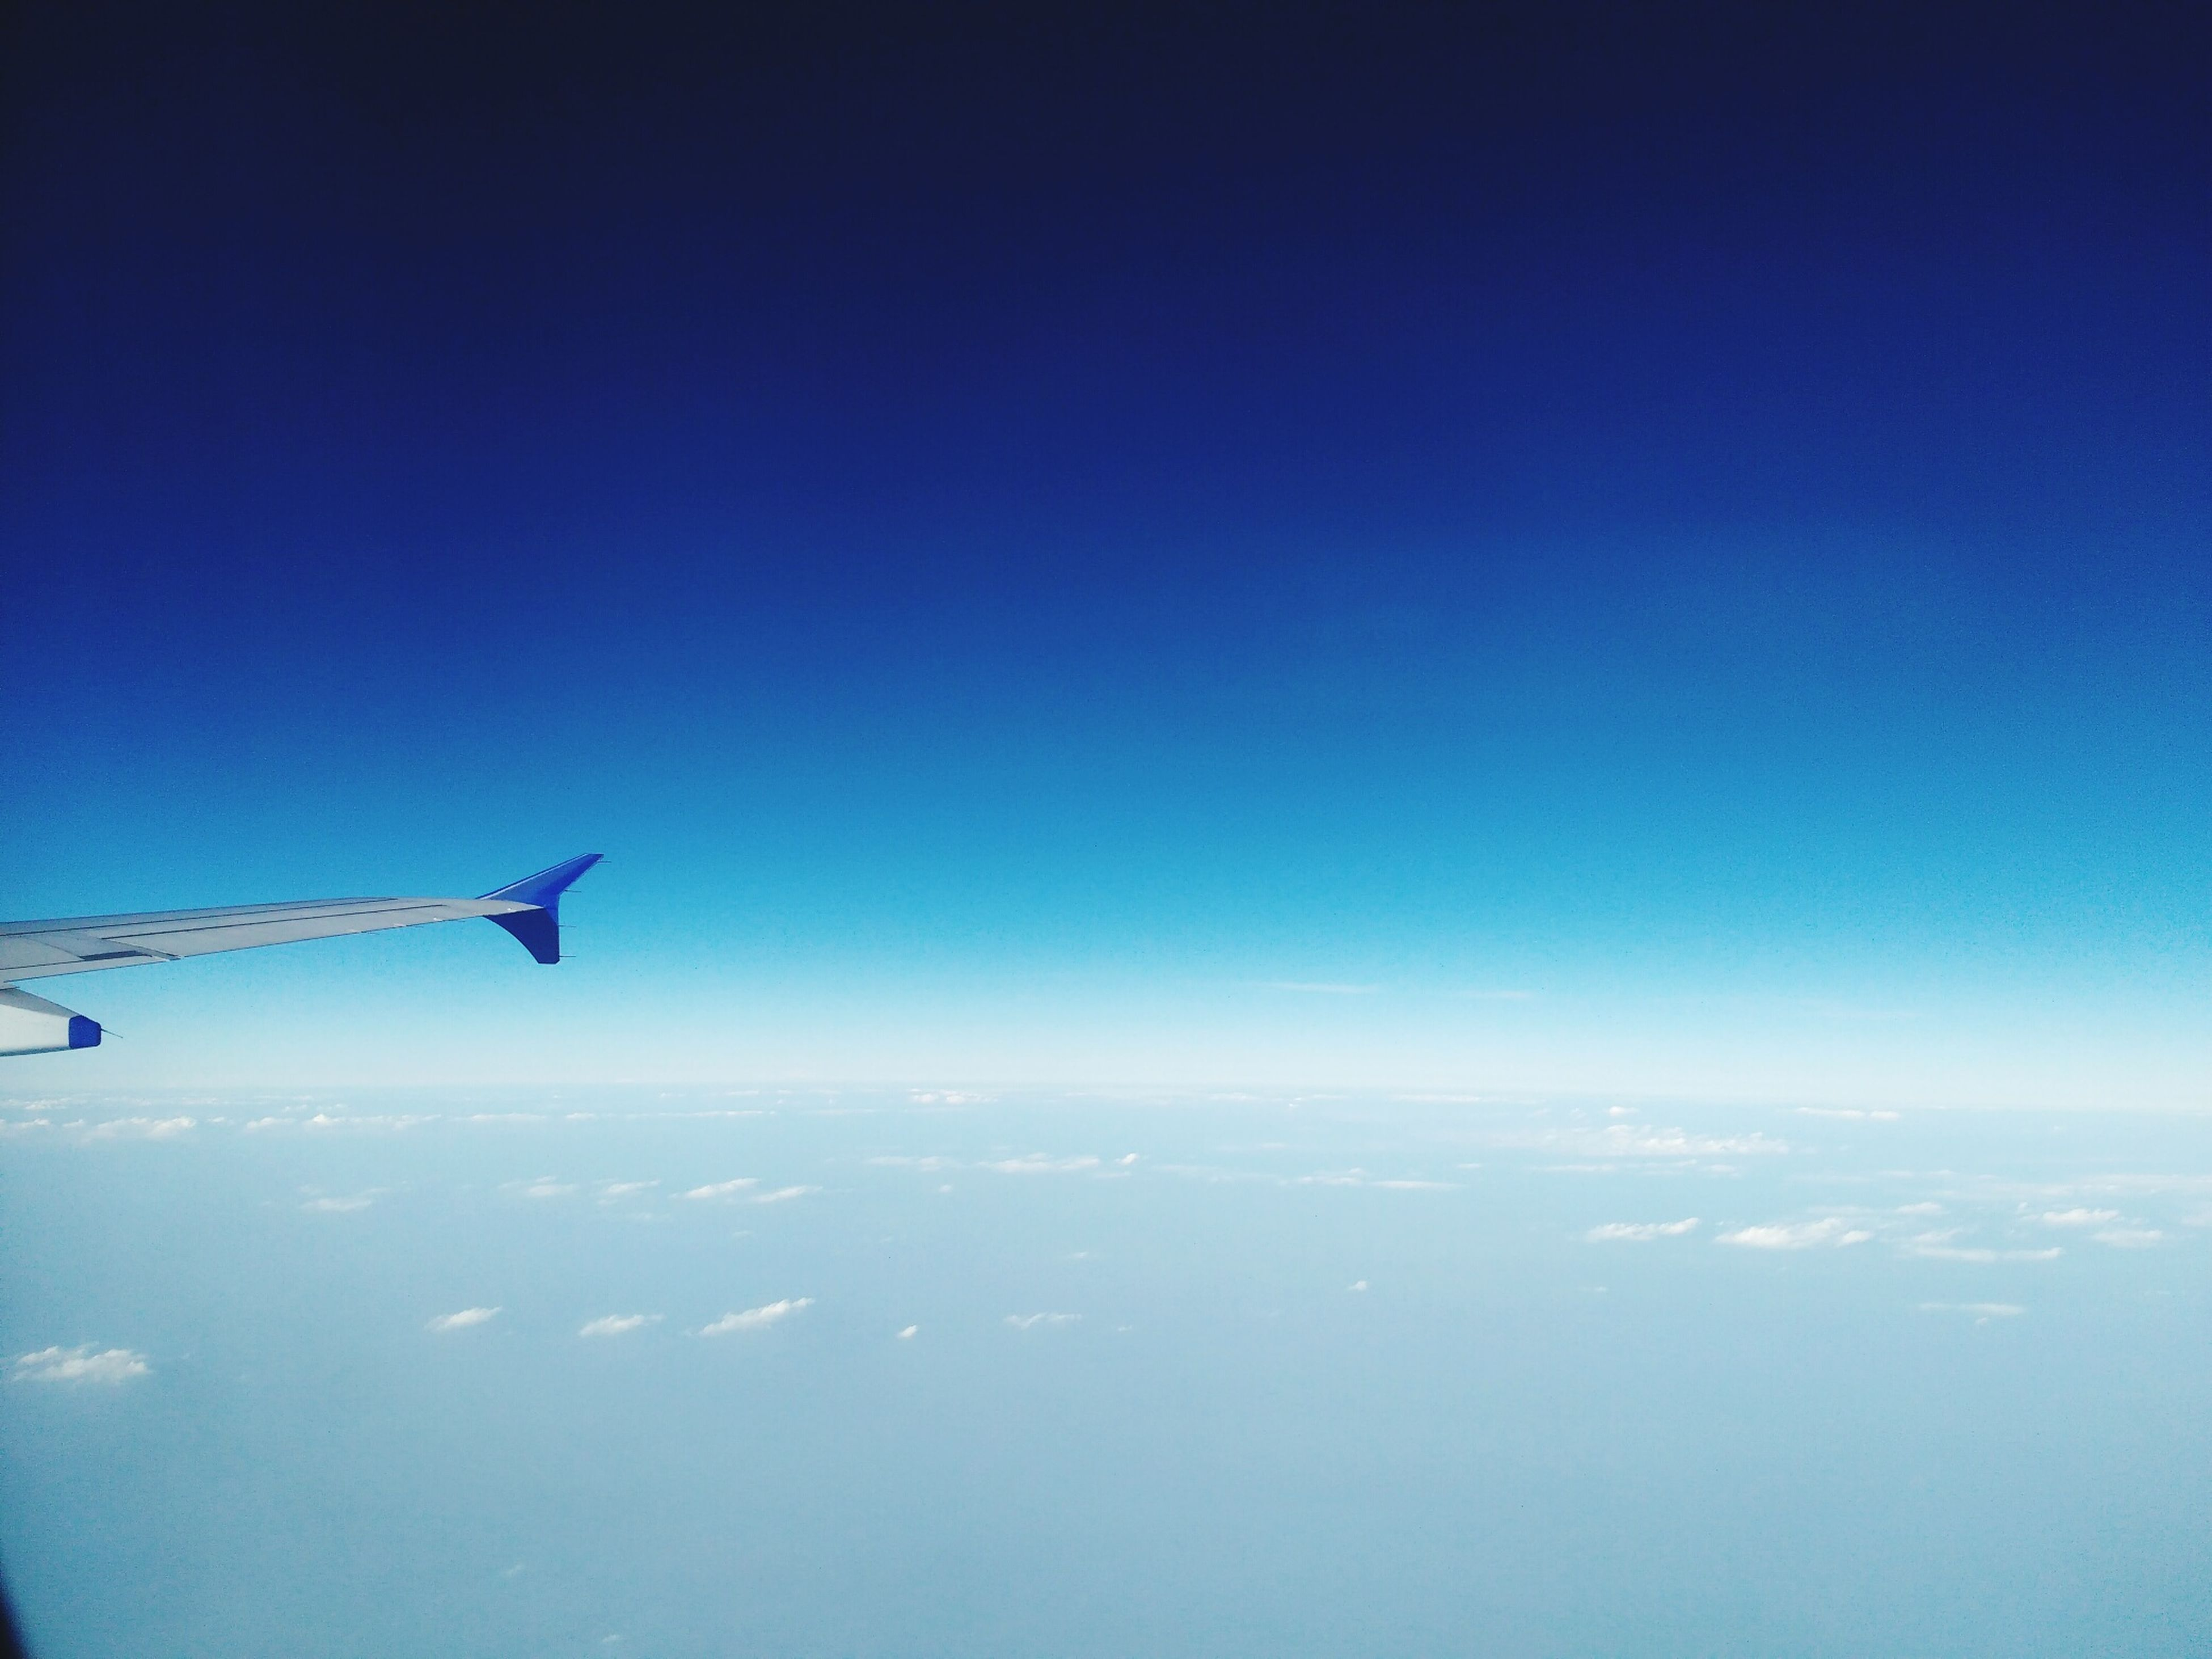 flying, airplane, blue, air vehicle, transportation, mode of transport, scenics, mid-air, aerial view, beauty in nature, aircraft wing, copy space, nature, tranquil scene, travel, tranquility, clear sky, journey, sky, landscape